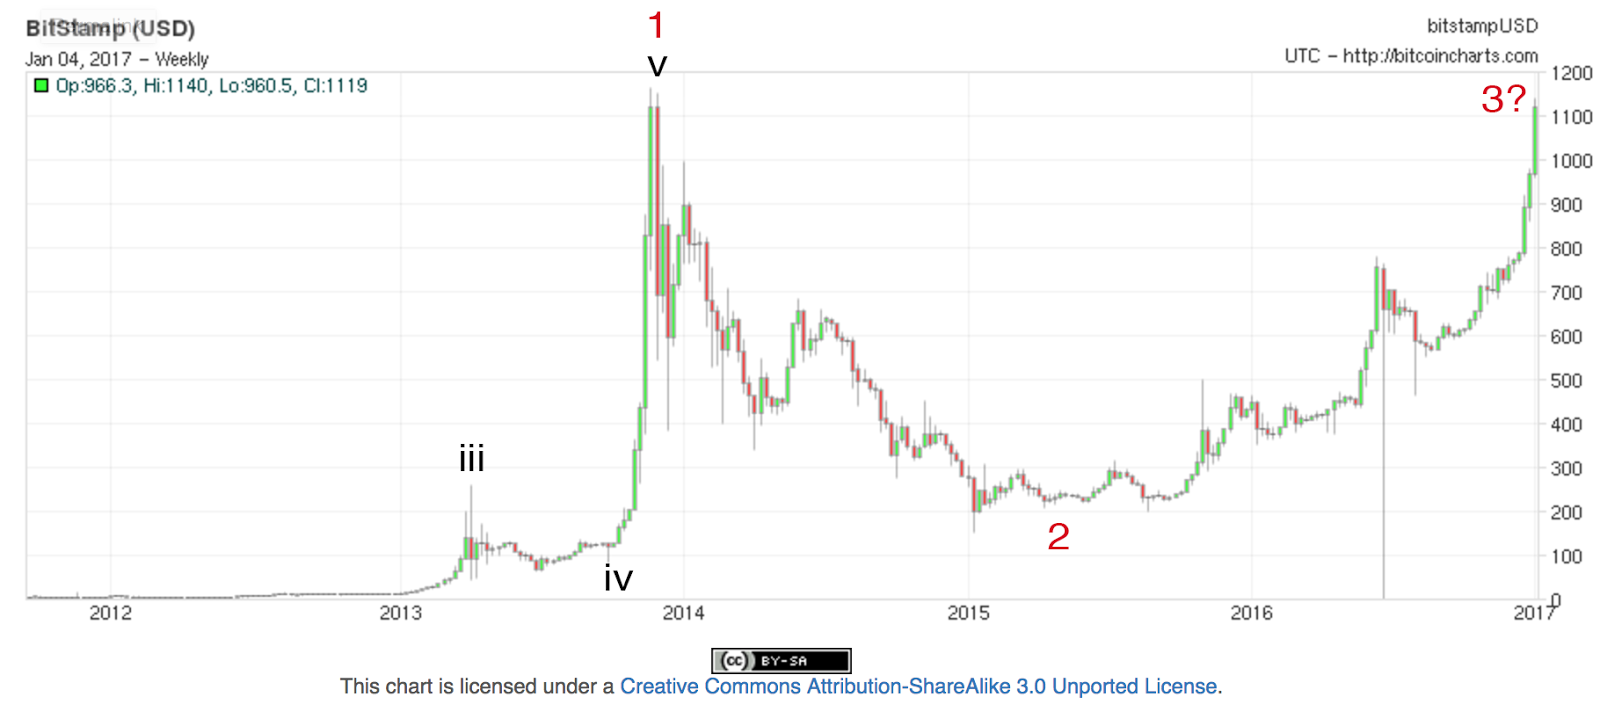 And Heres What A Bitcoin Chart Looked Like Just Before We Breached The Wave I Peak In Late Feb 13